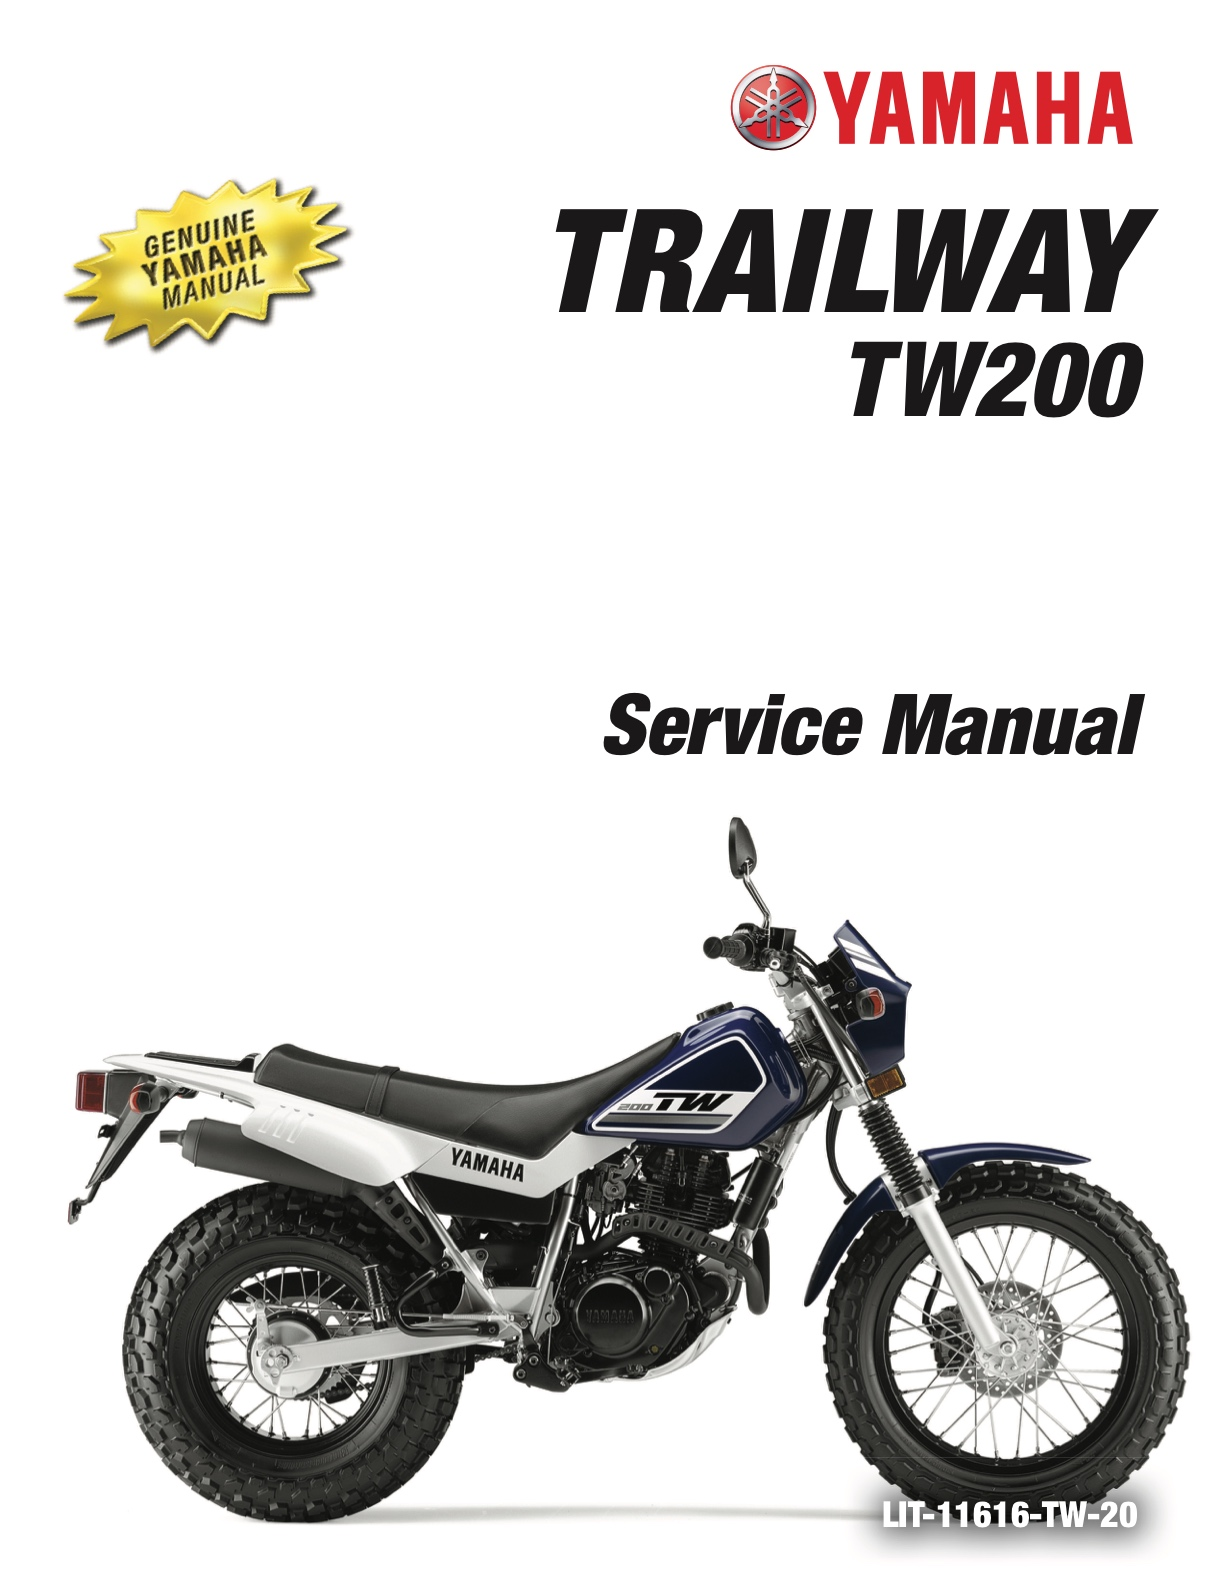 YAMAHA TRAILWAY TW200 2001-2019 Workshop Service Manual